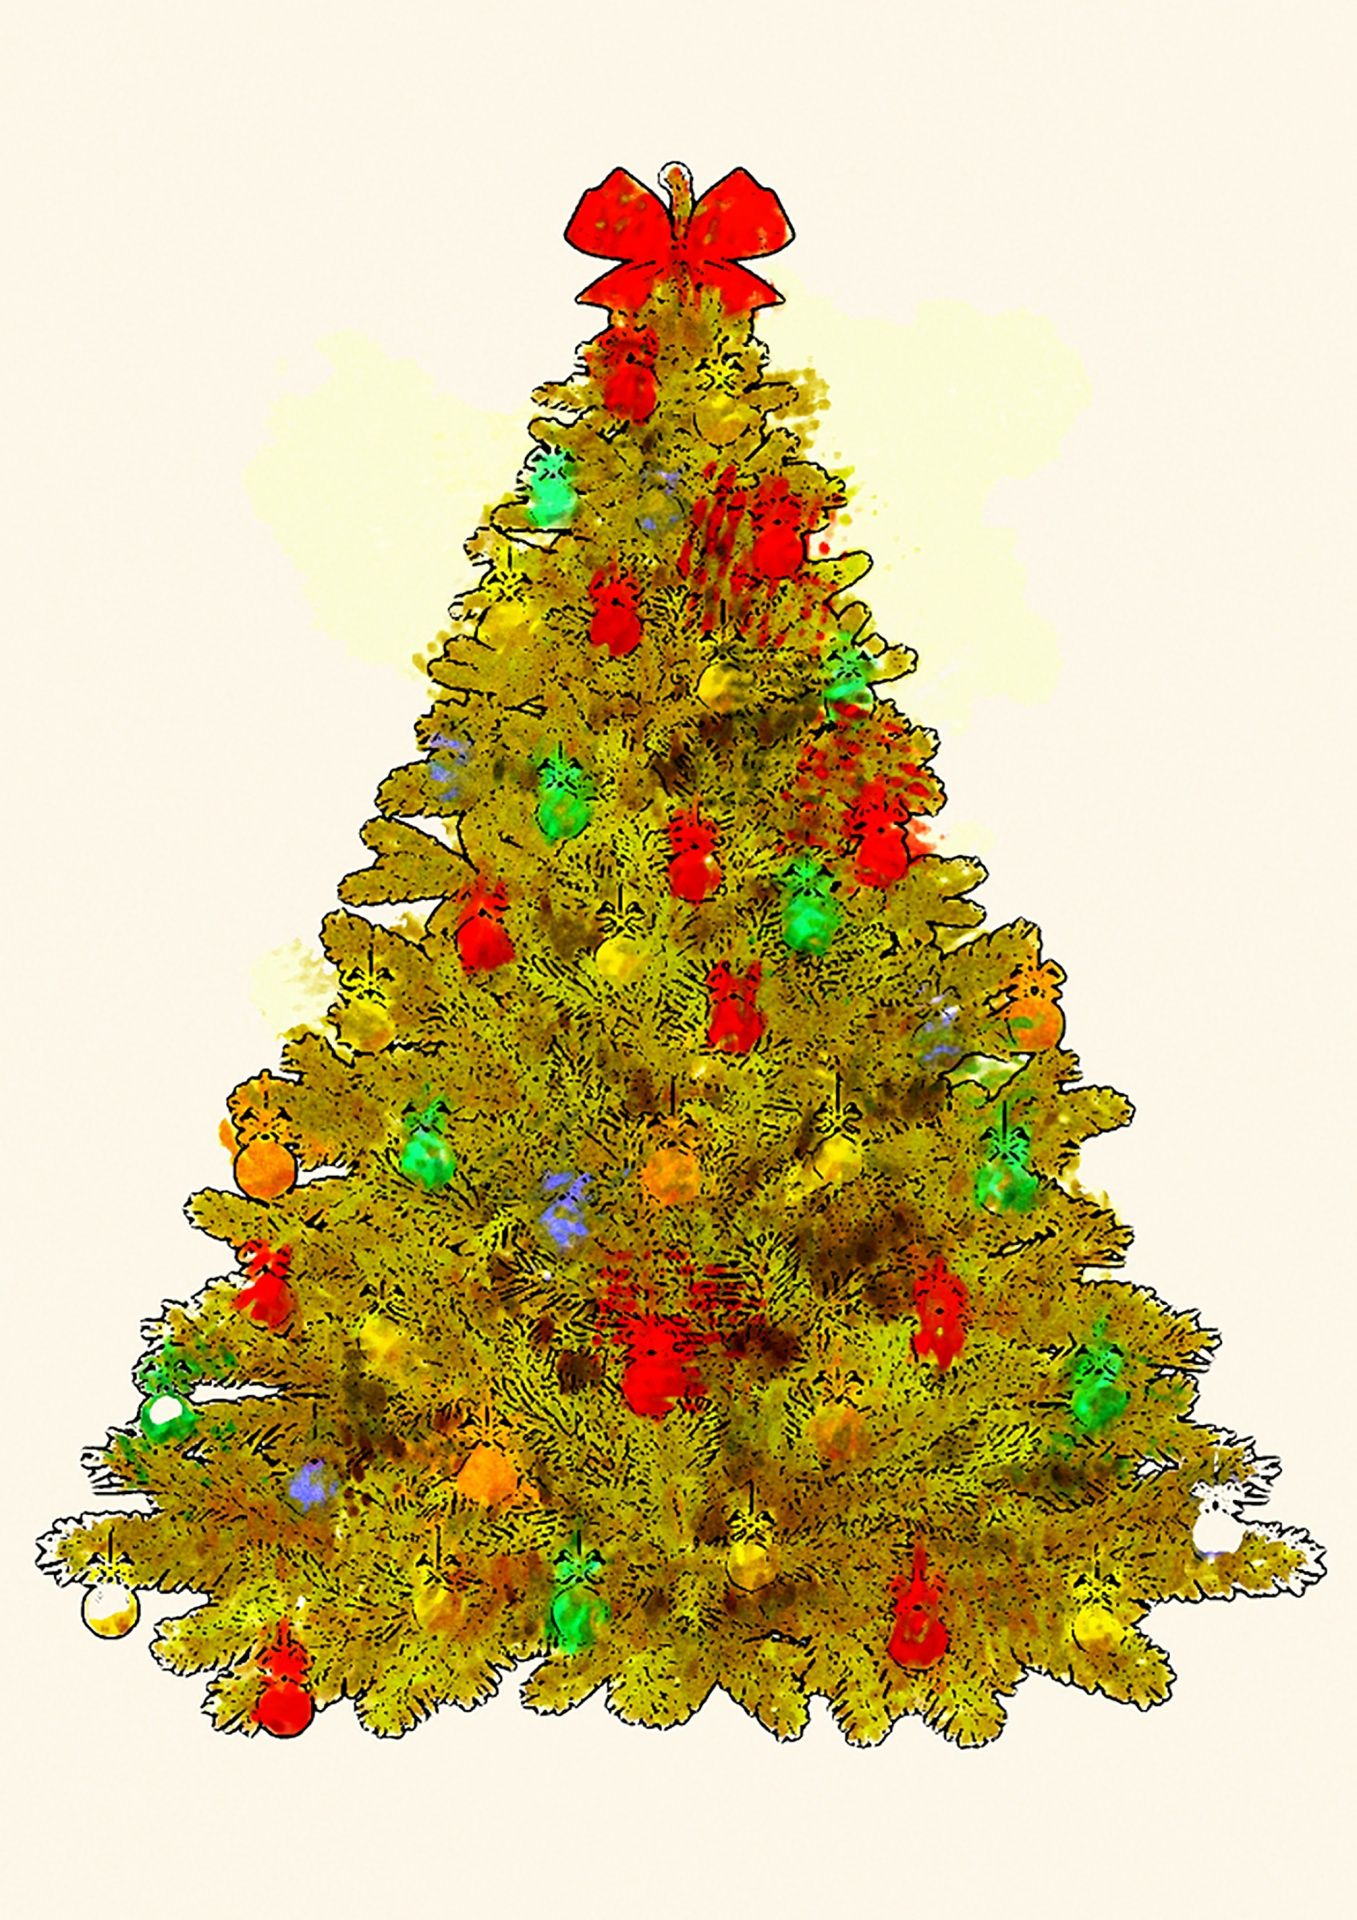 Christmas Images Free For Commercial Use.Yellow Christmas Tree One Of Over 16 000 Free Images